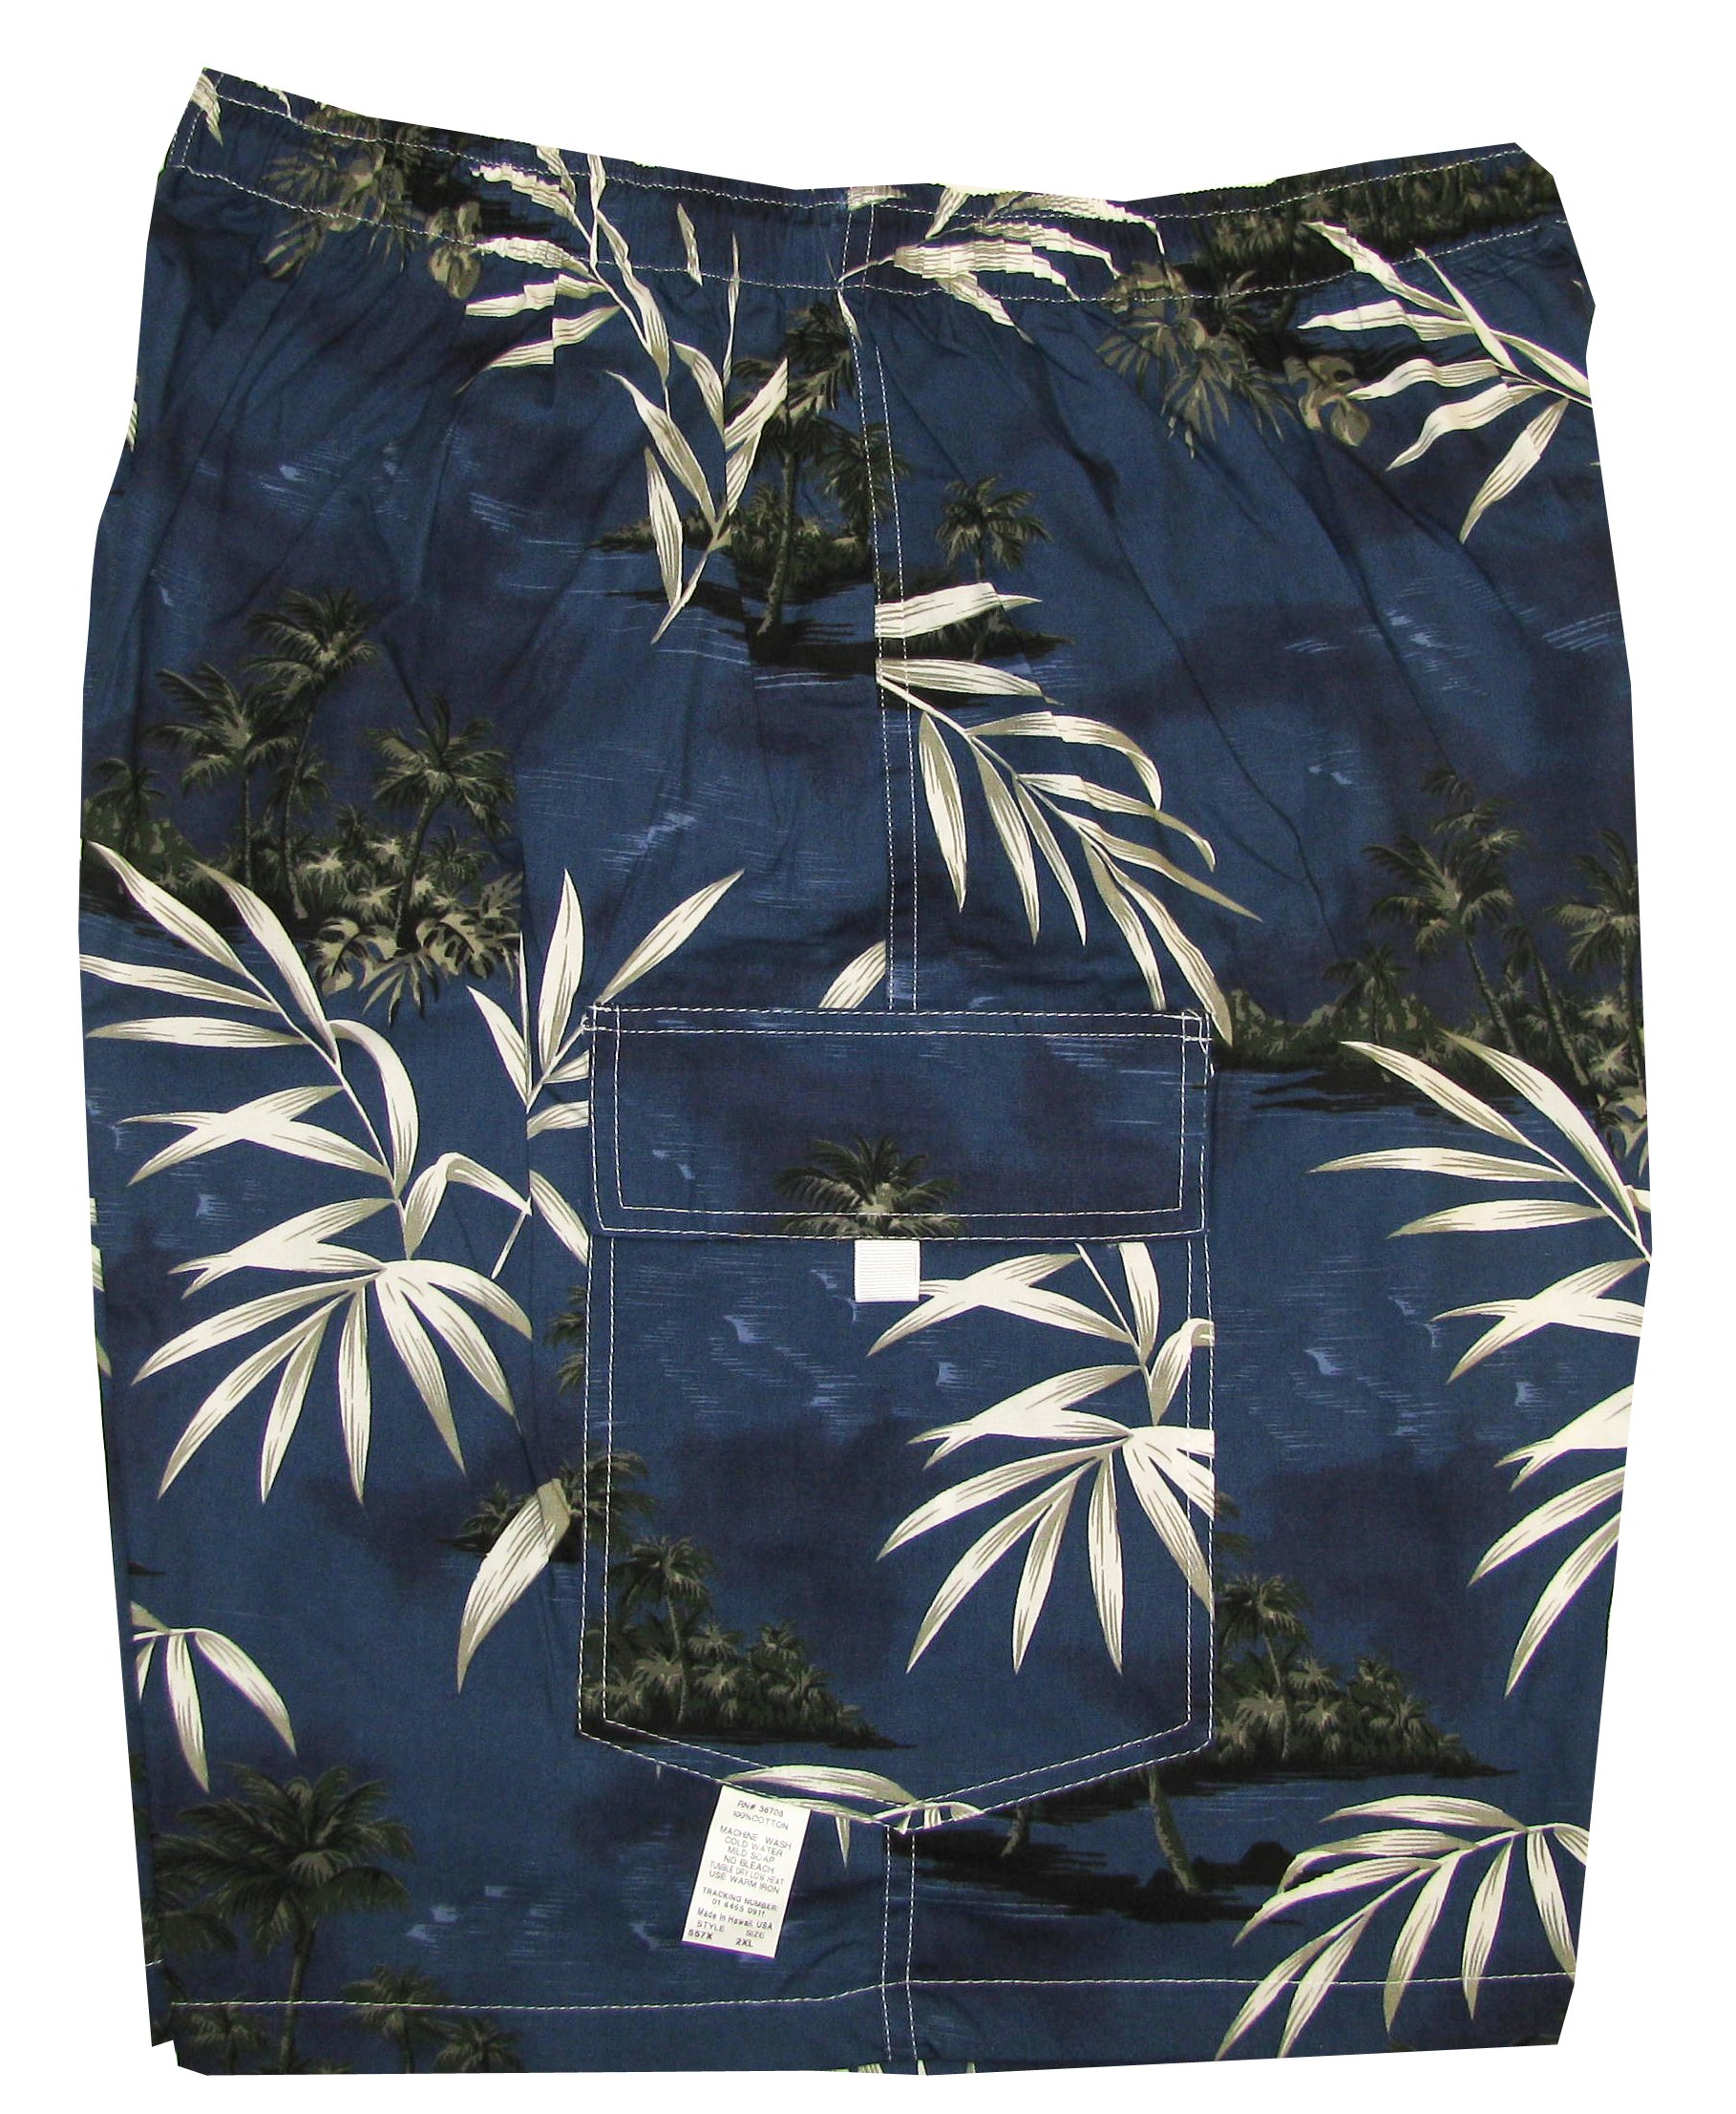 Men's Cargo Shorts - Bamboo Island Elastic Waistband Inside Drawcord Flap Pocket Cotton Shorts in Navy Blue - S